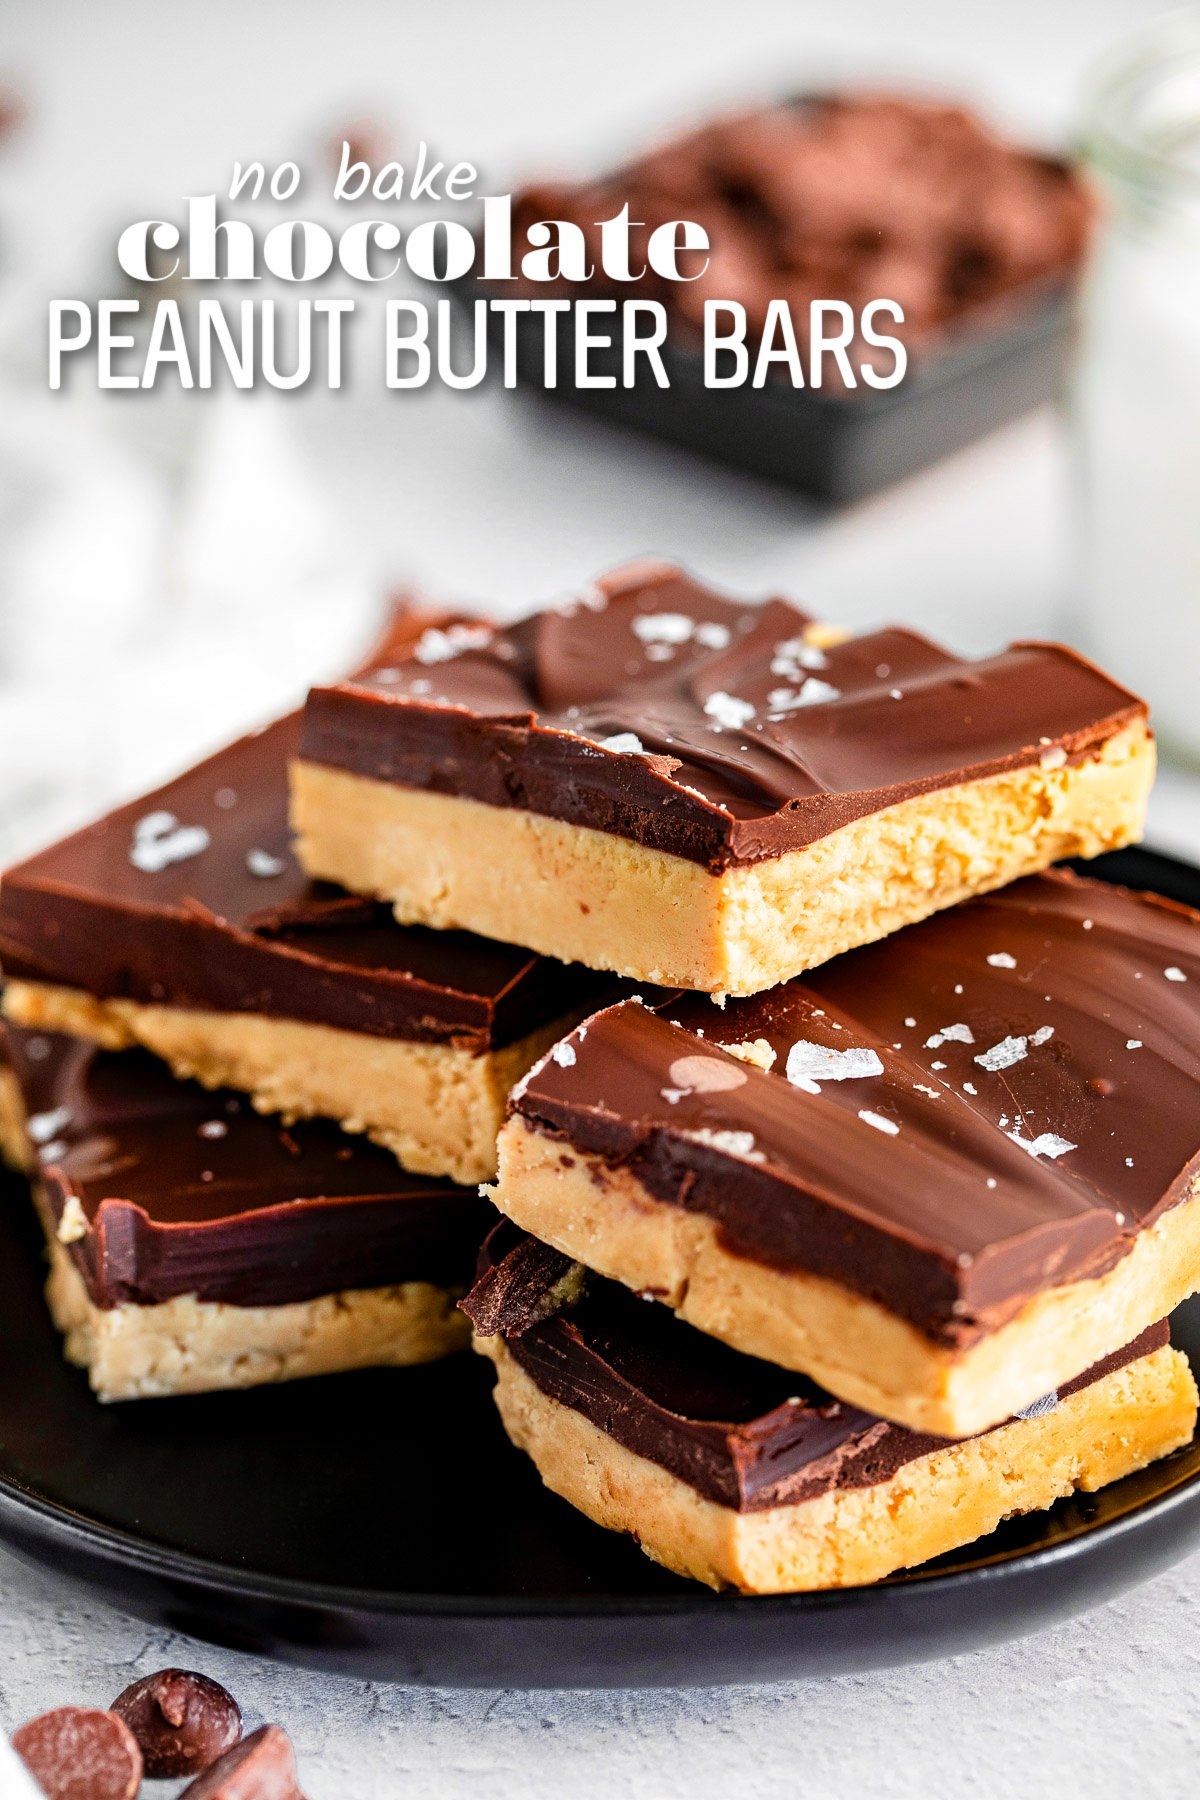 peanut butter chocolate bars stacked on black plate and sprinkled with sea salt. title overlay at top of image.